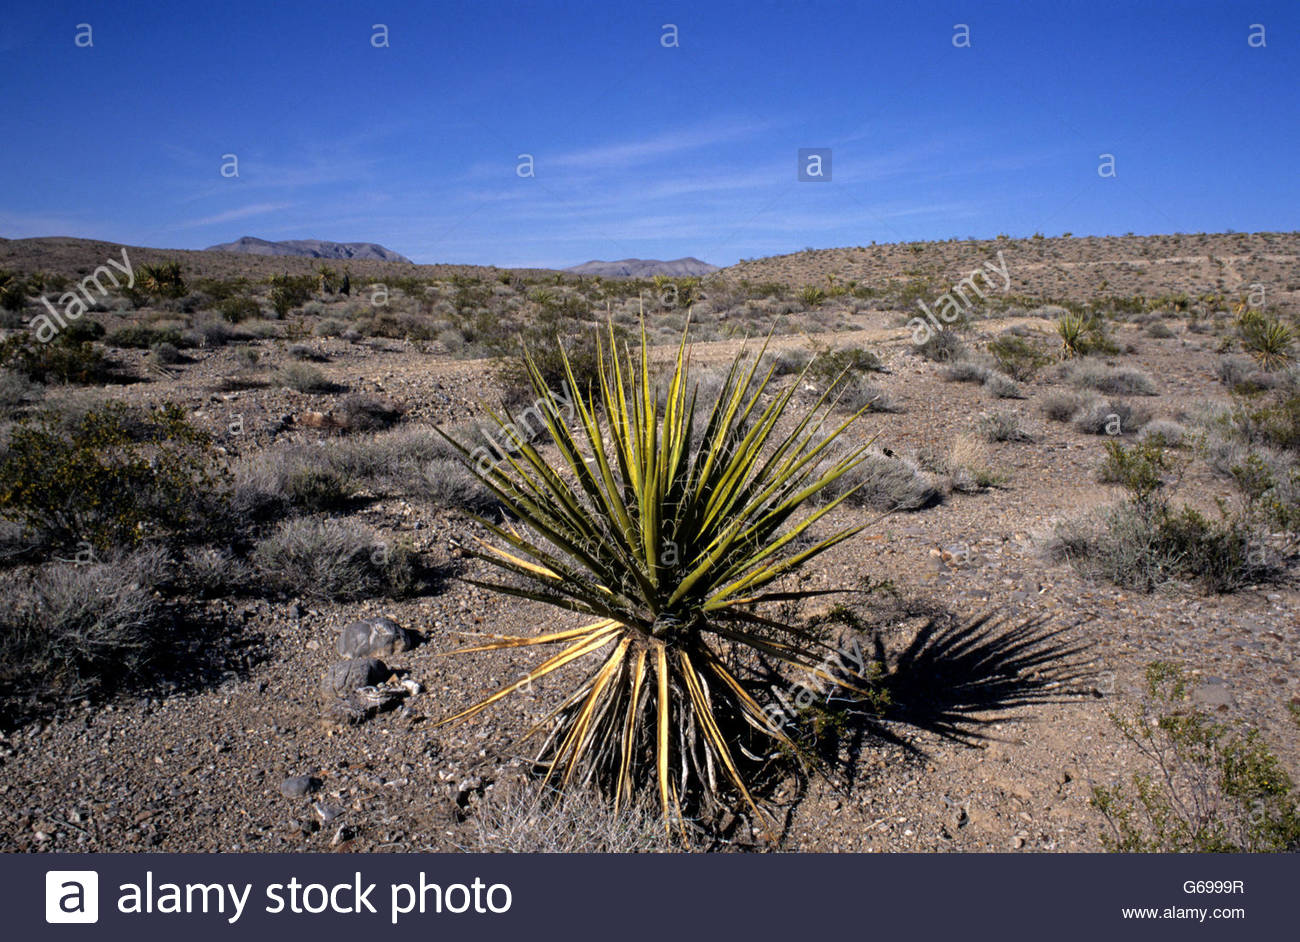 mohave yucca plant nevada desert lincoln county nevada stock